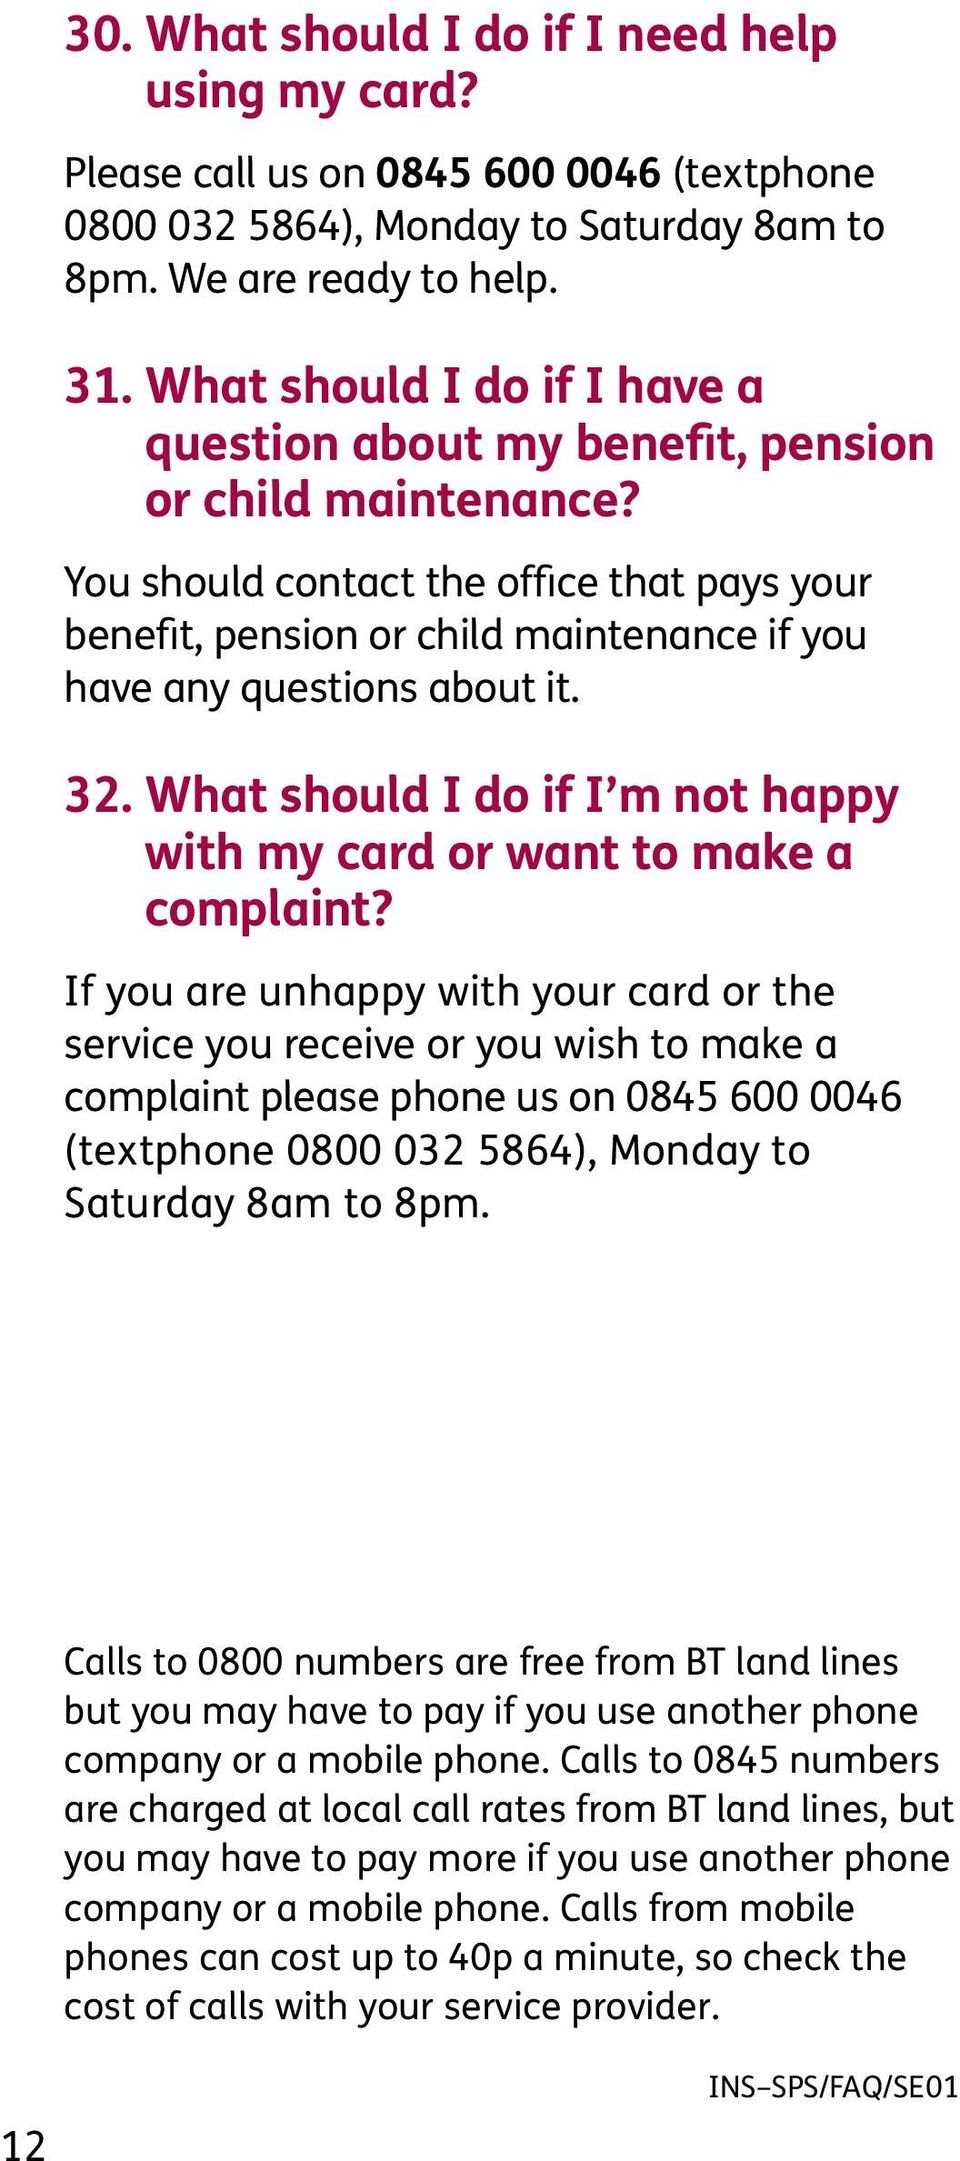 You should contact the office that pays your benefit, pension or child maintenance if you have any questions about it. 32. What should I do if I m not happy with my card or want to make a complaint?